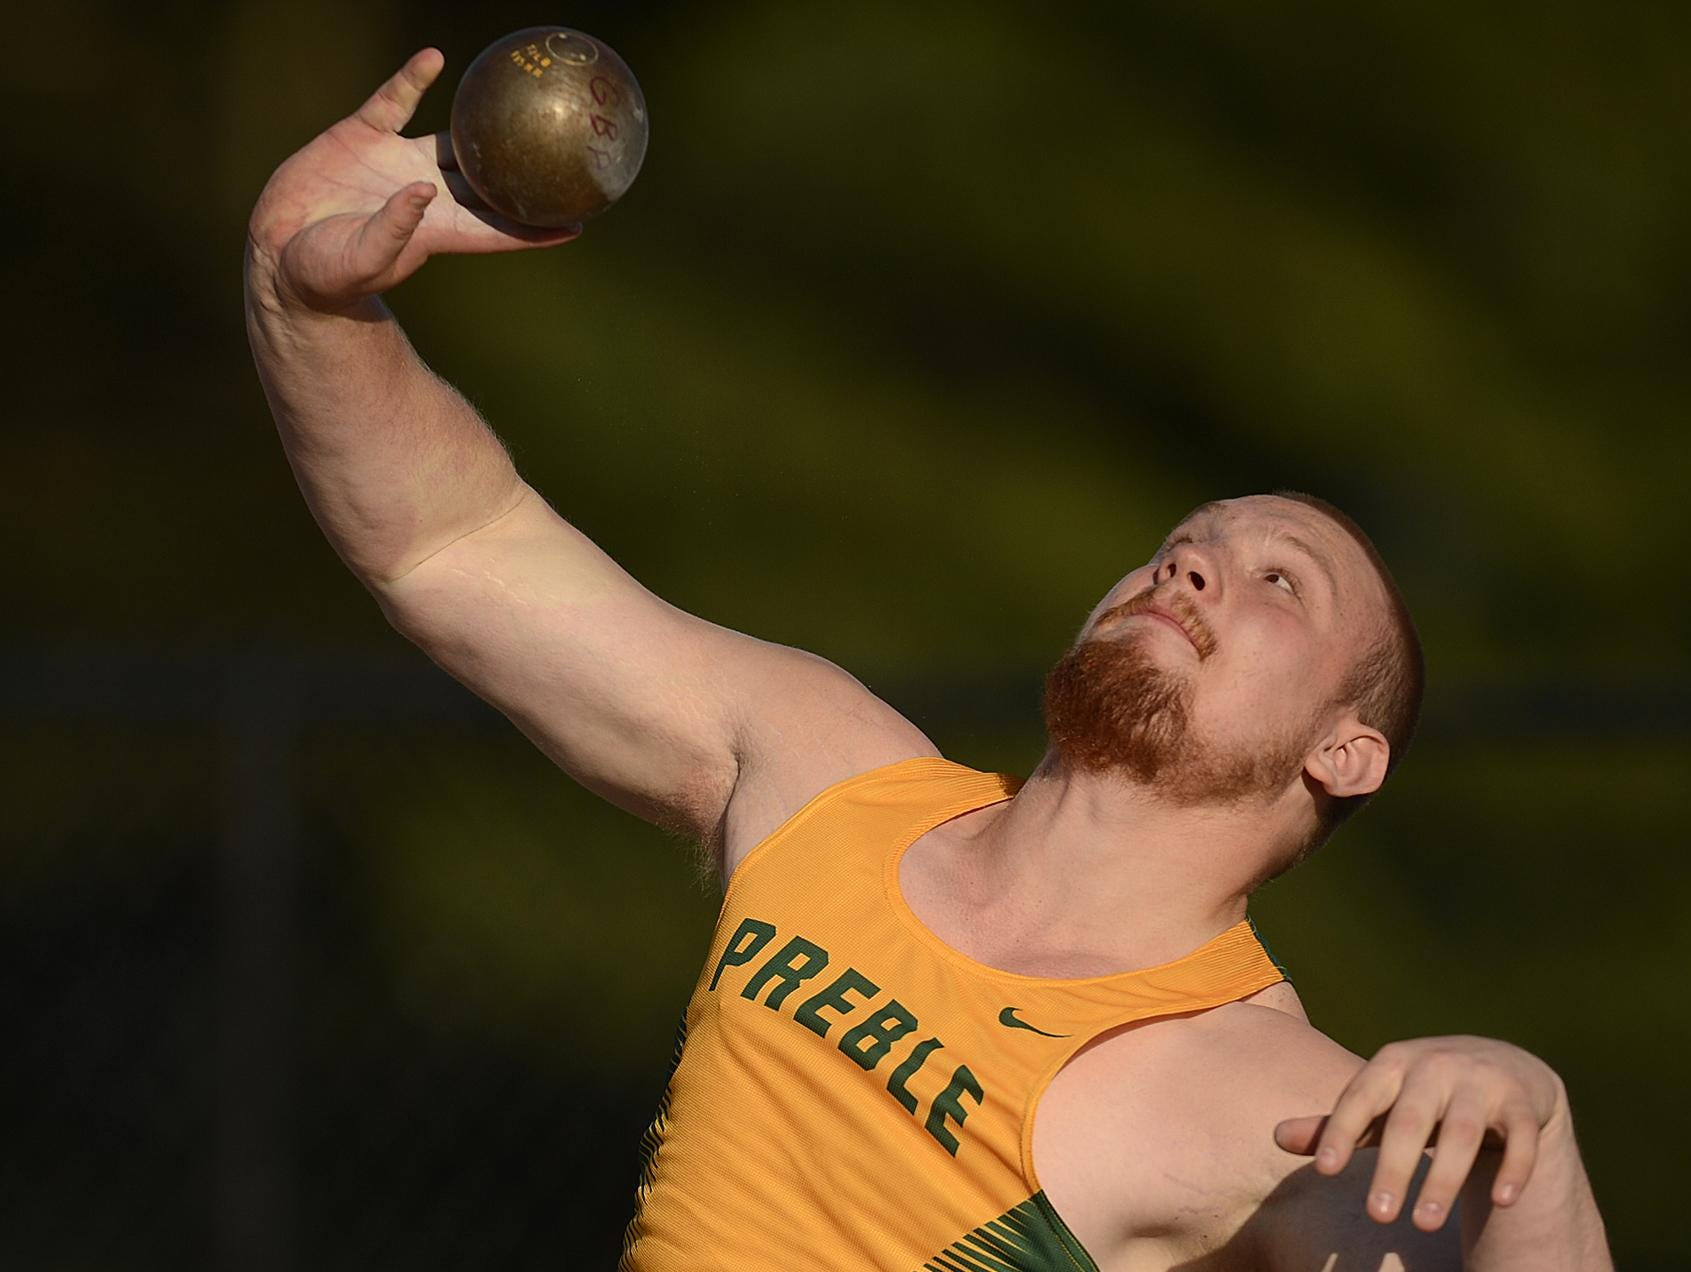 Green Bay Preble's Ryan Ray makes a throw while competing in the Division 1 shot put at the WIAA state track and field meet. Ray took third in the event.